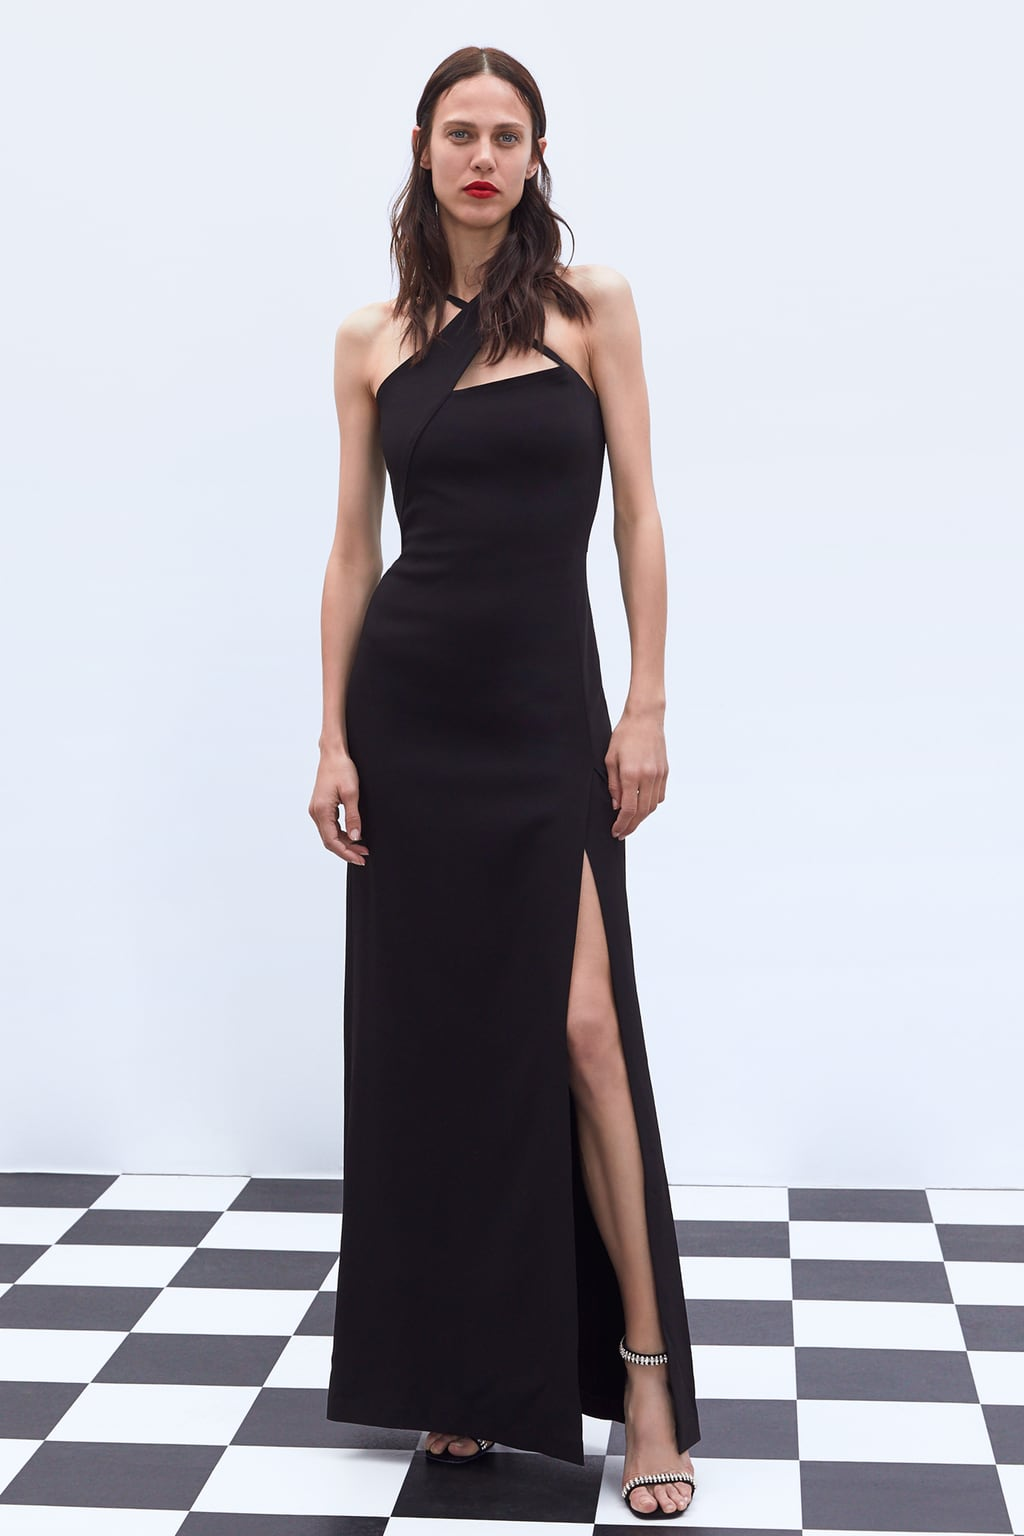 DRESS WITH CROSSED STRAPS - 95.99 GBP